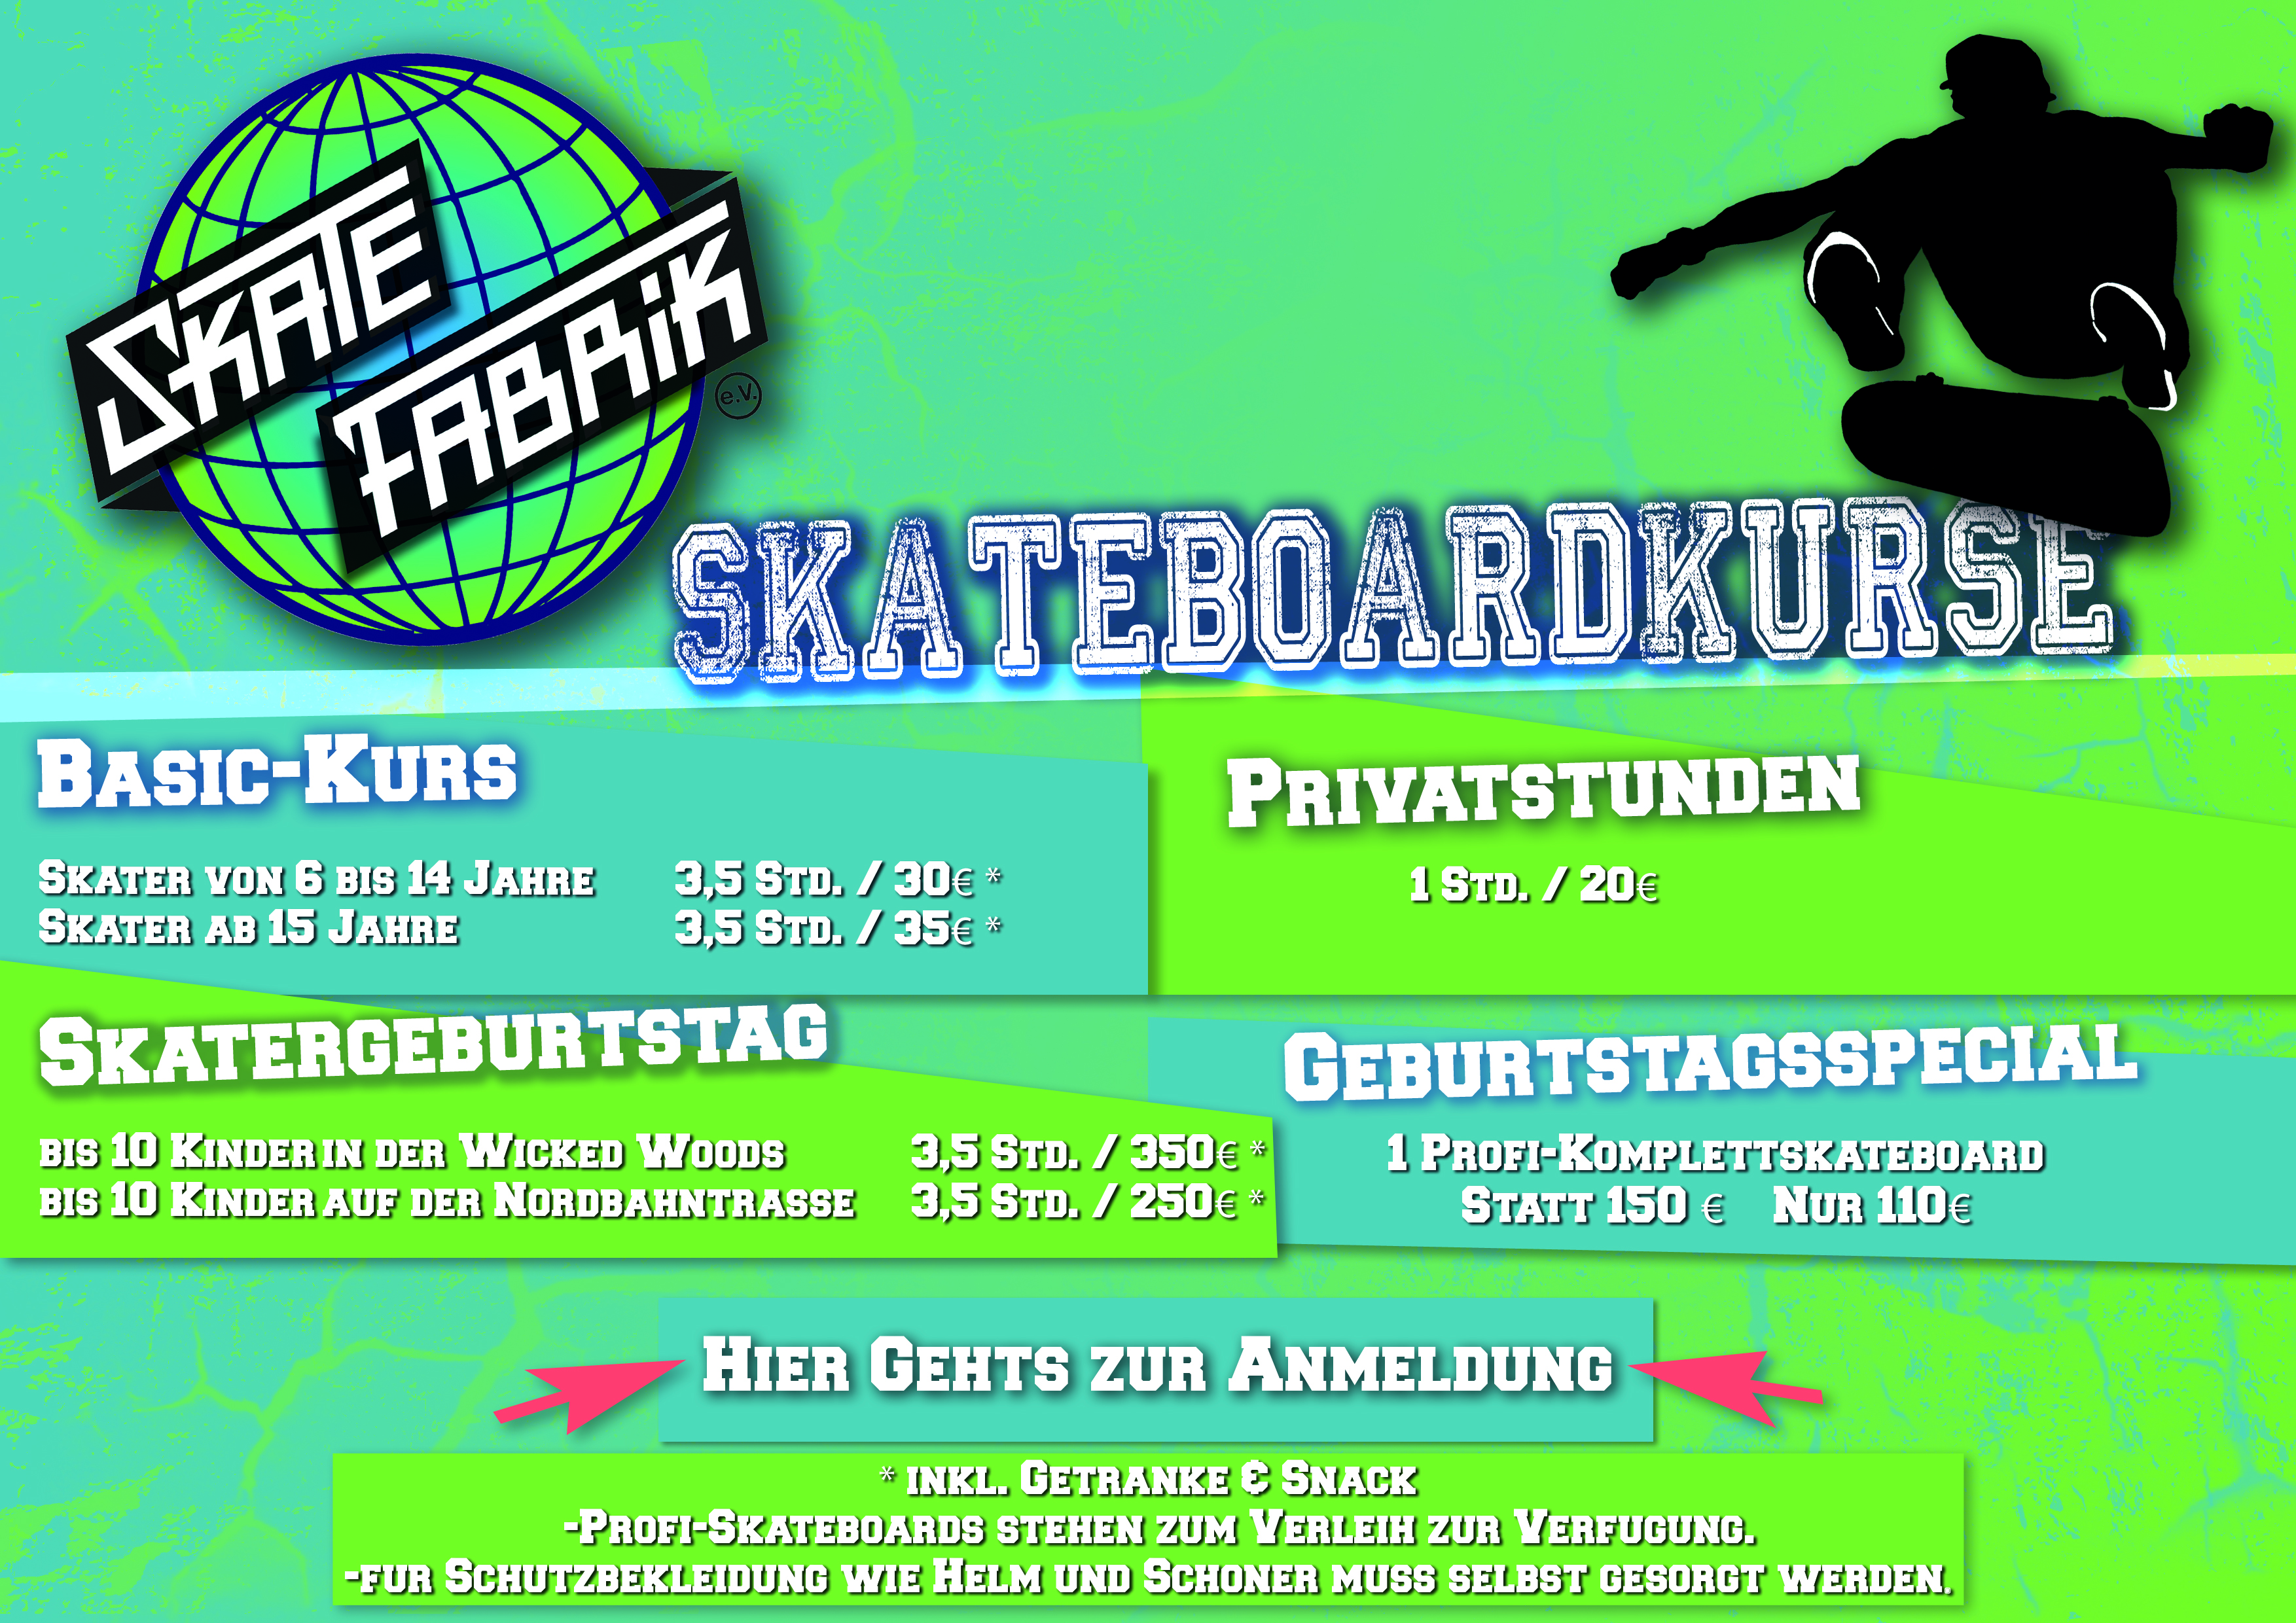 skatekurse flyer website